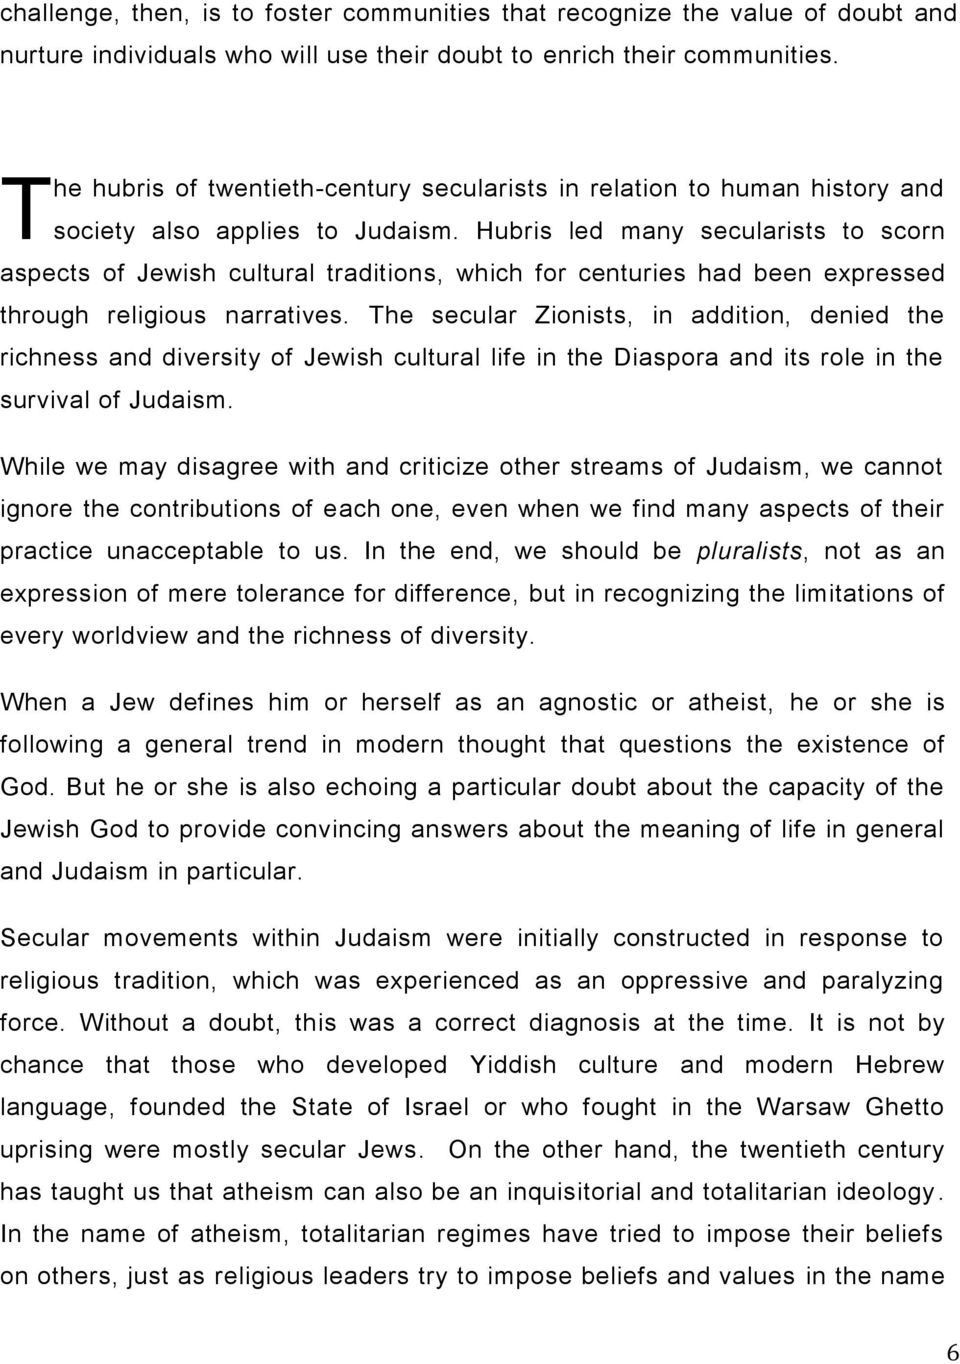 Hubris led many secularists to scorn aspects of Jewish cultural traditions, which for centuries had been expressed through religious narratives.